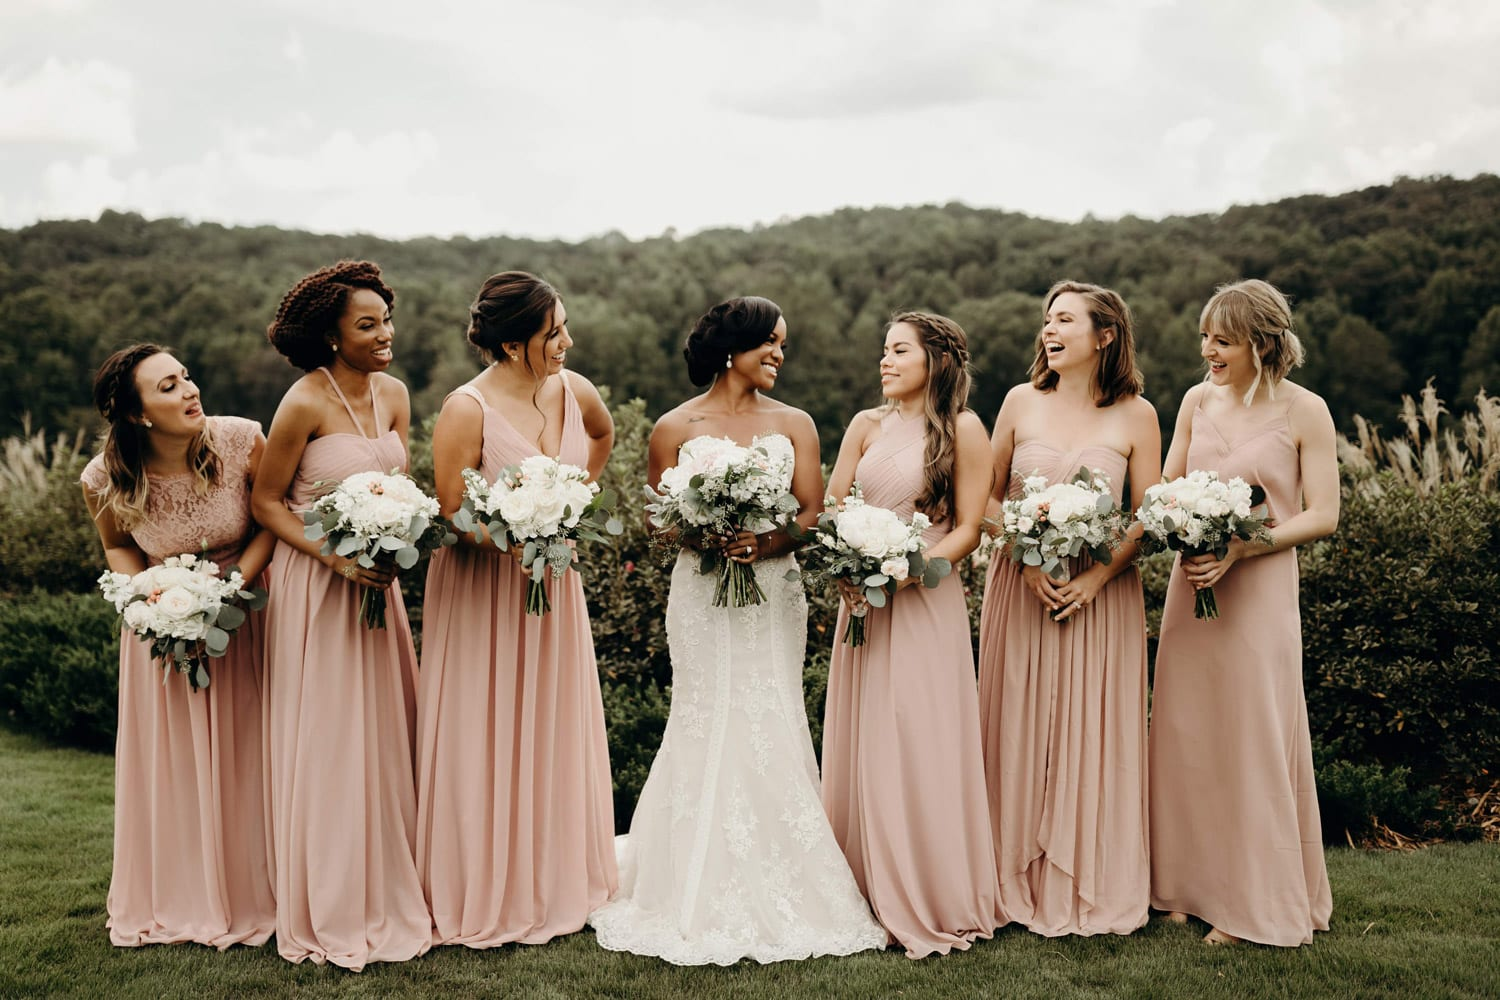 Bride and bridesmaids outside holding flowers